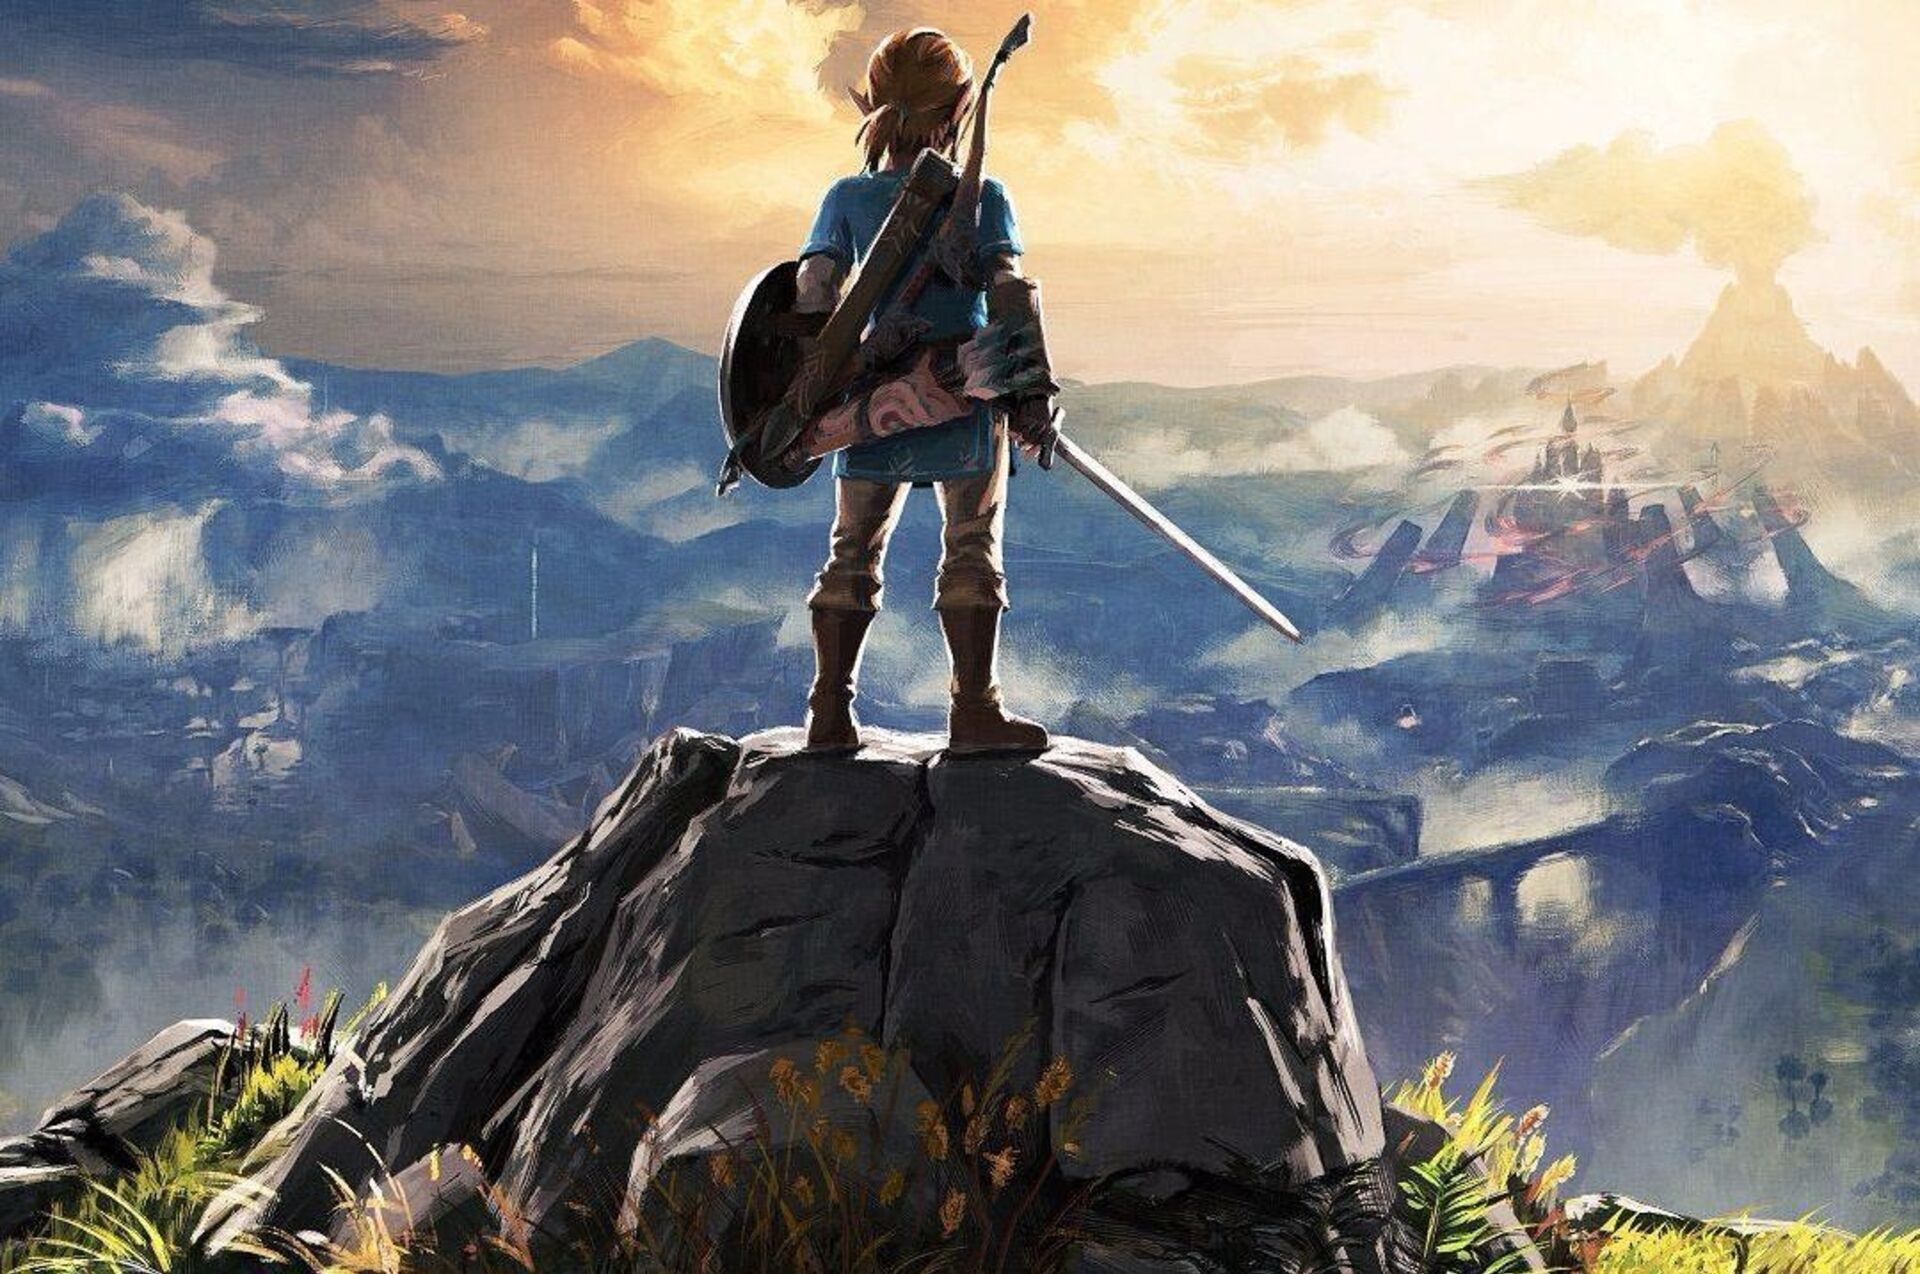 Zelda: Breath of the Wild uses dynamic resolution scaling